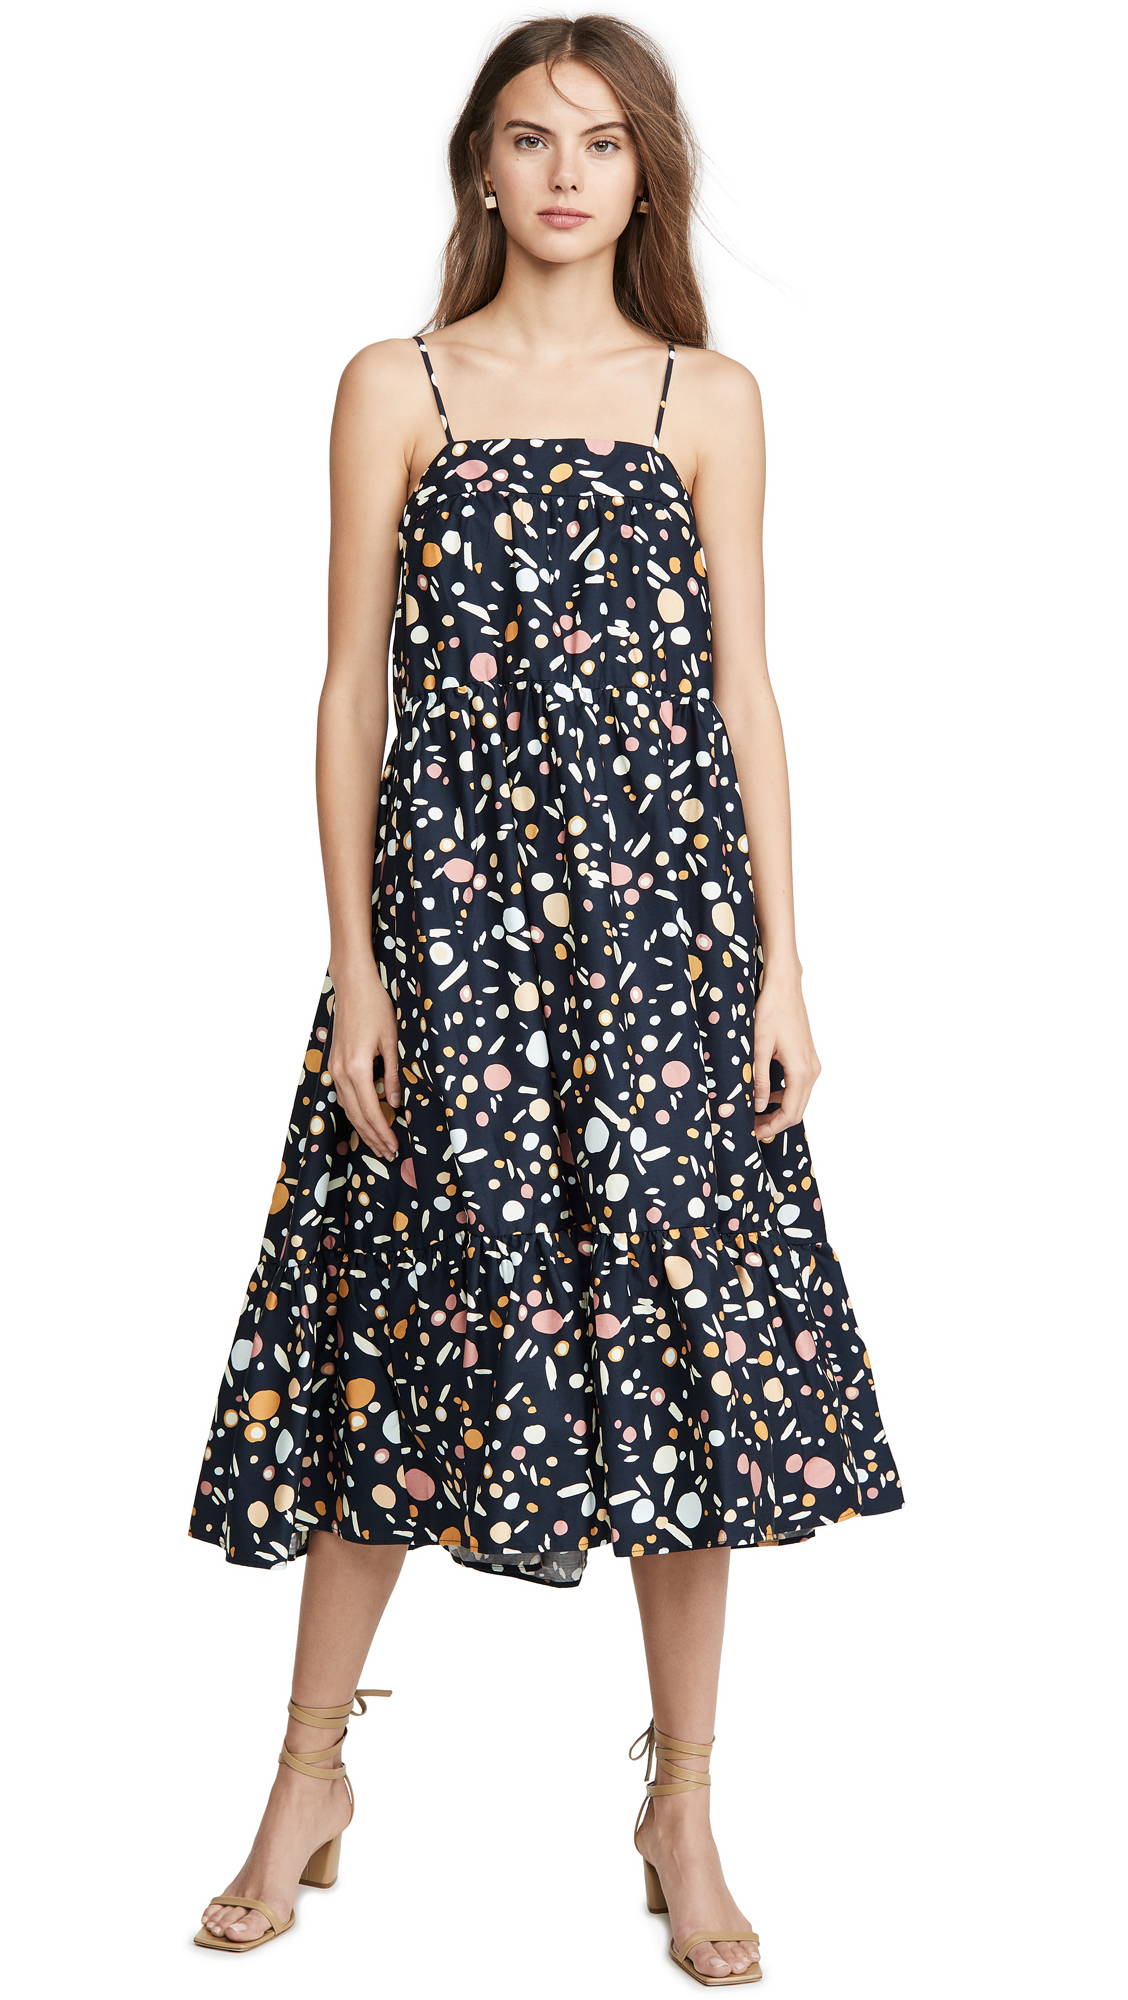 Simon Miller Pumpa Dress - 25% Off Sale